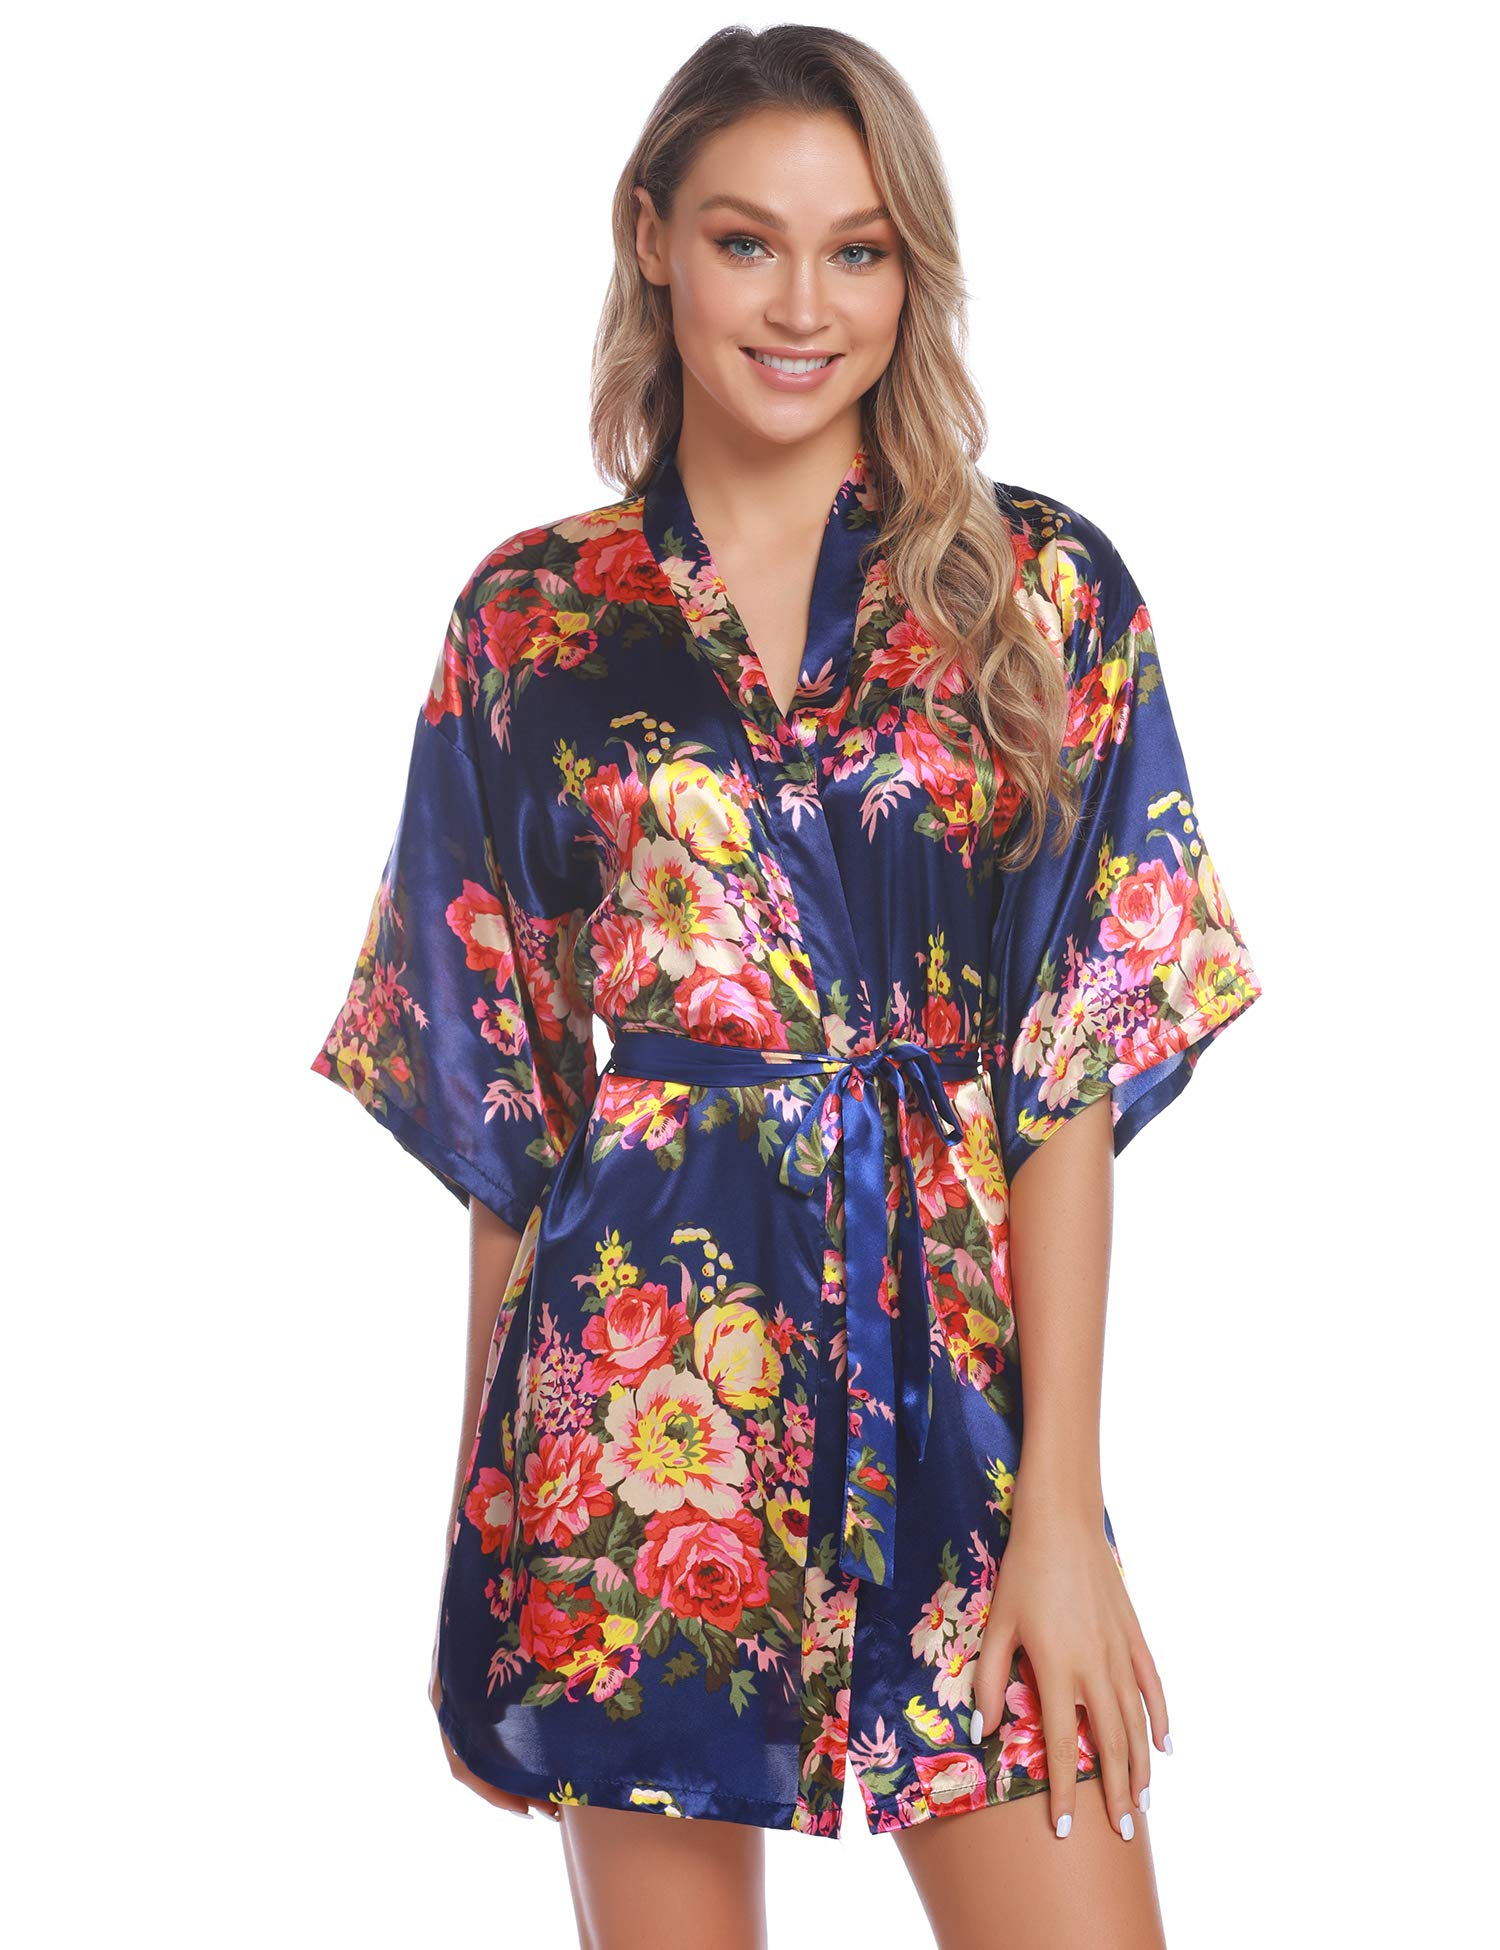 Aiboria Women S Floral Satin Bride Bridesmaids Robes Wedding Bridal Party Kimono Robes Sleepwear